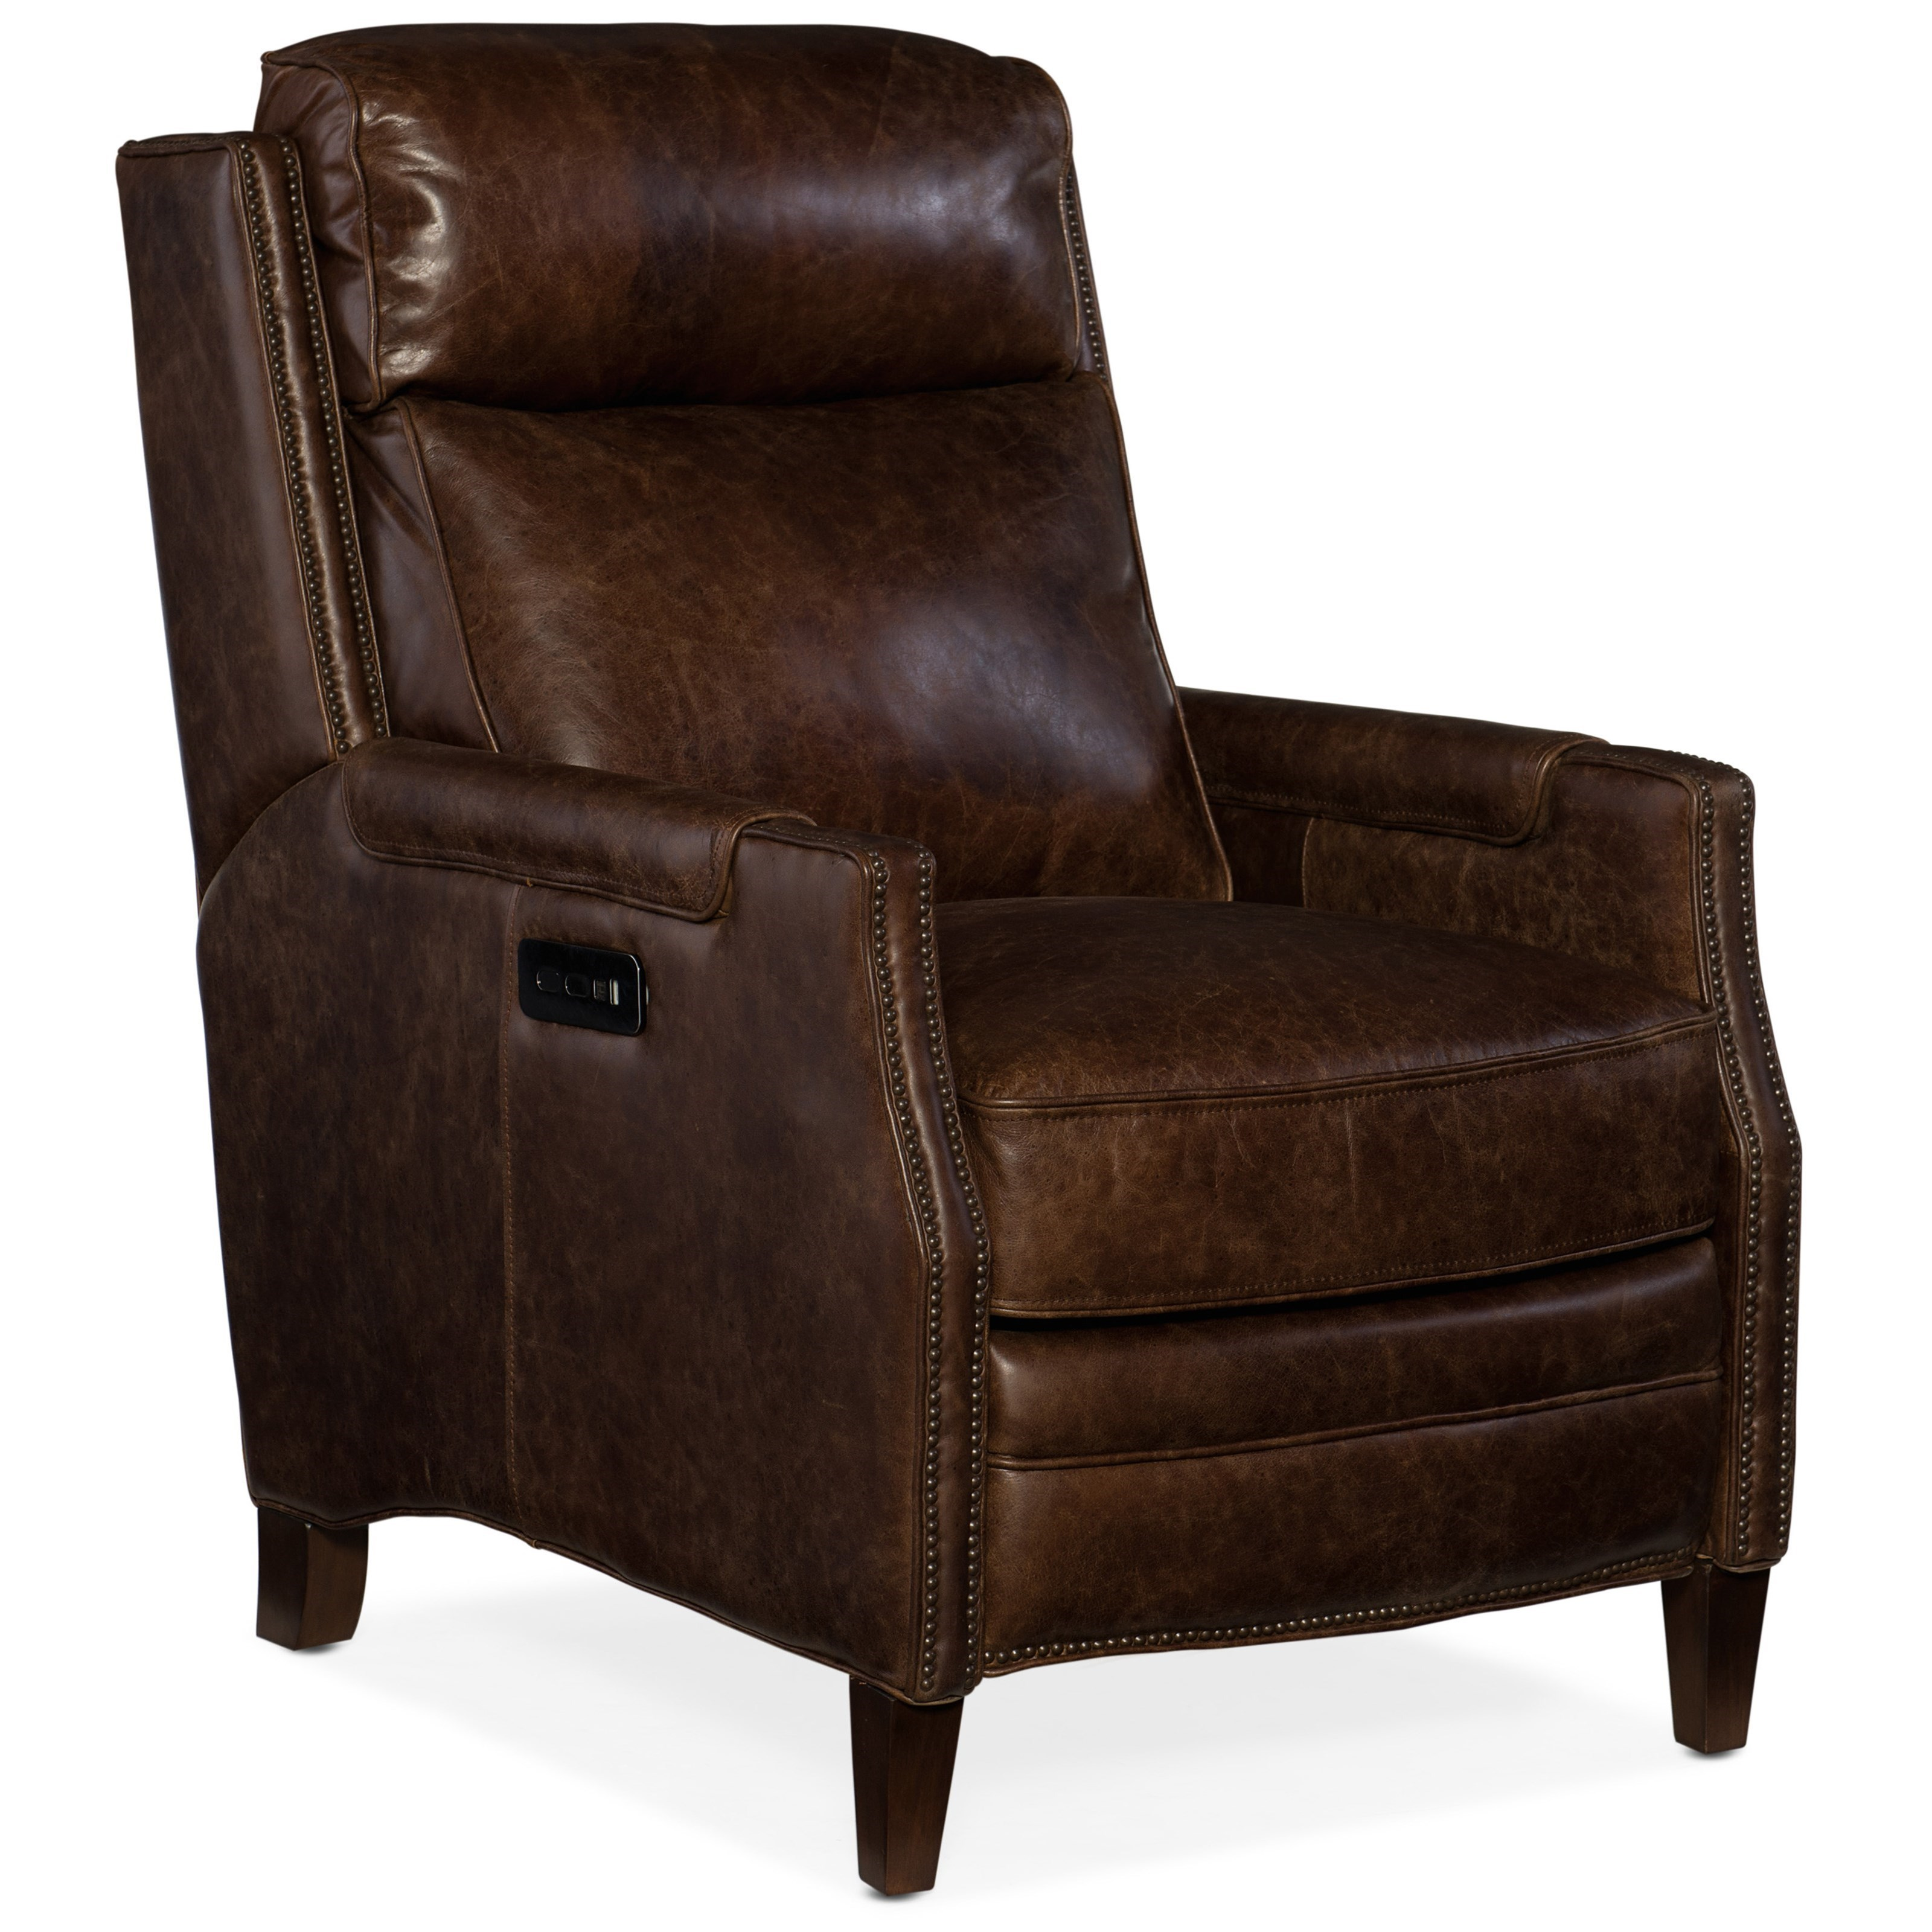 Reclining Chairs Regale Power Recliner with Power Headrest by Hooker Furniture at Baer's Furniture